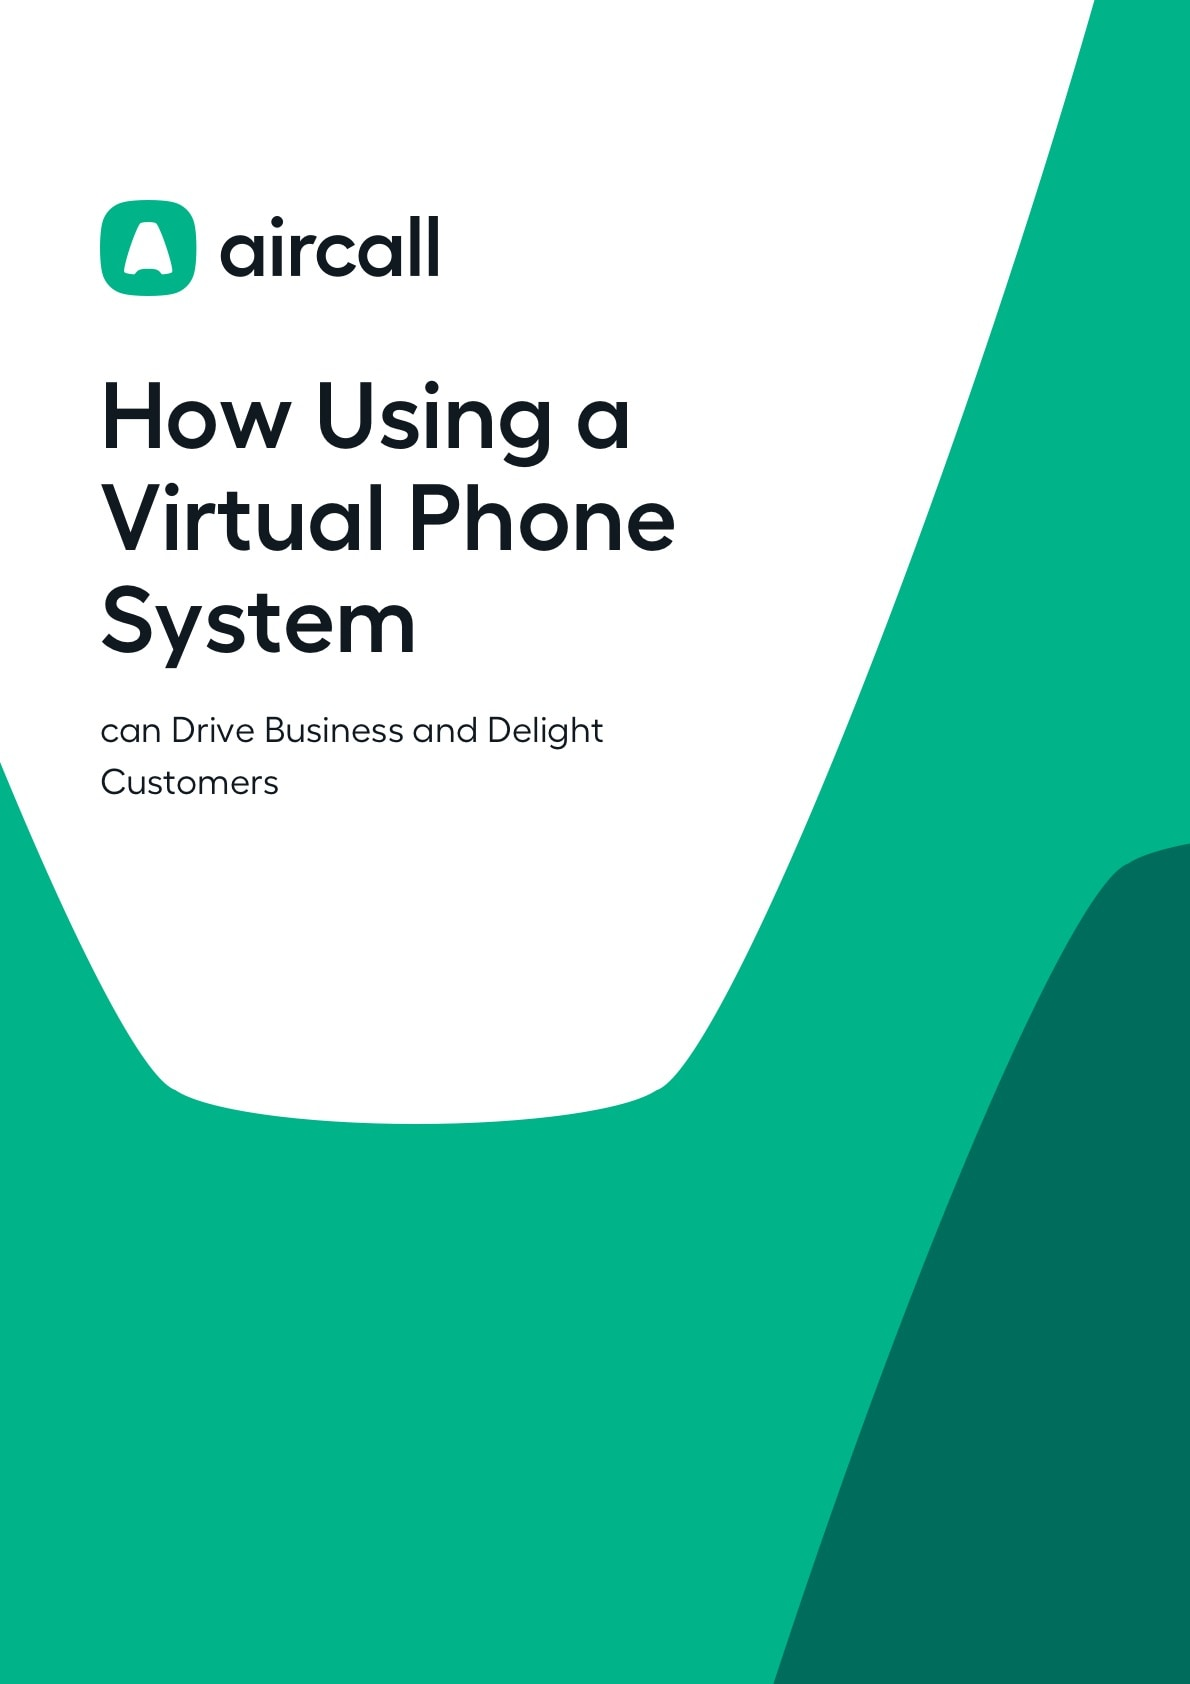 Aircall the benefits of a cloud-based phone system | aircall - guides